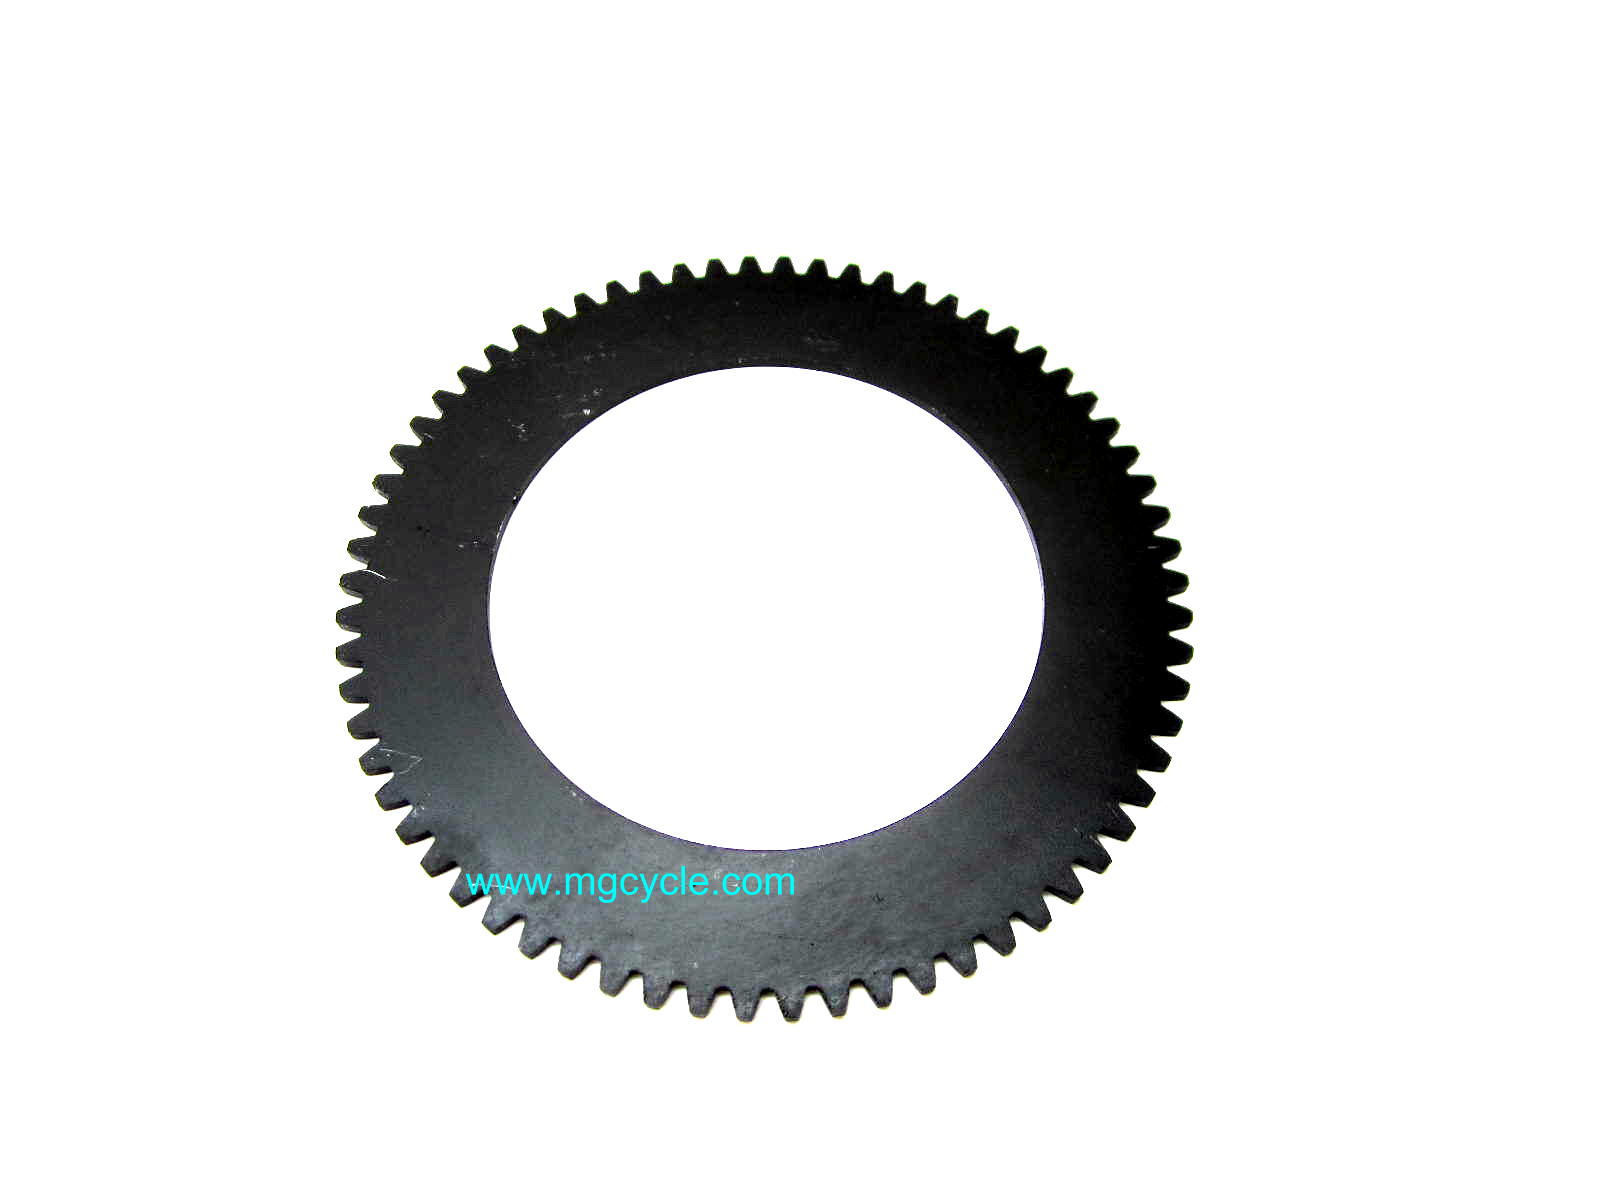 Clutch intermediate plate, alternate GU12082300